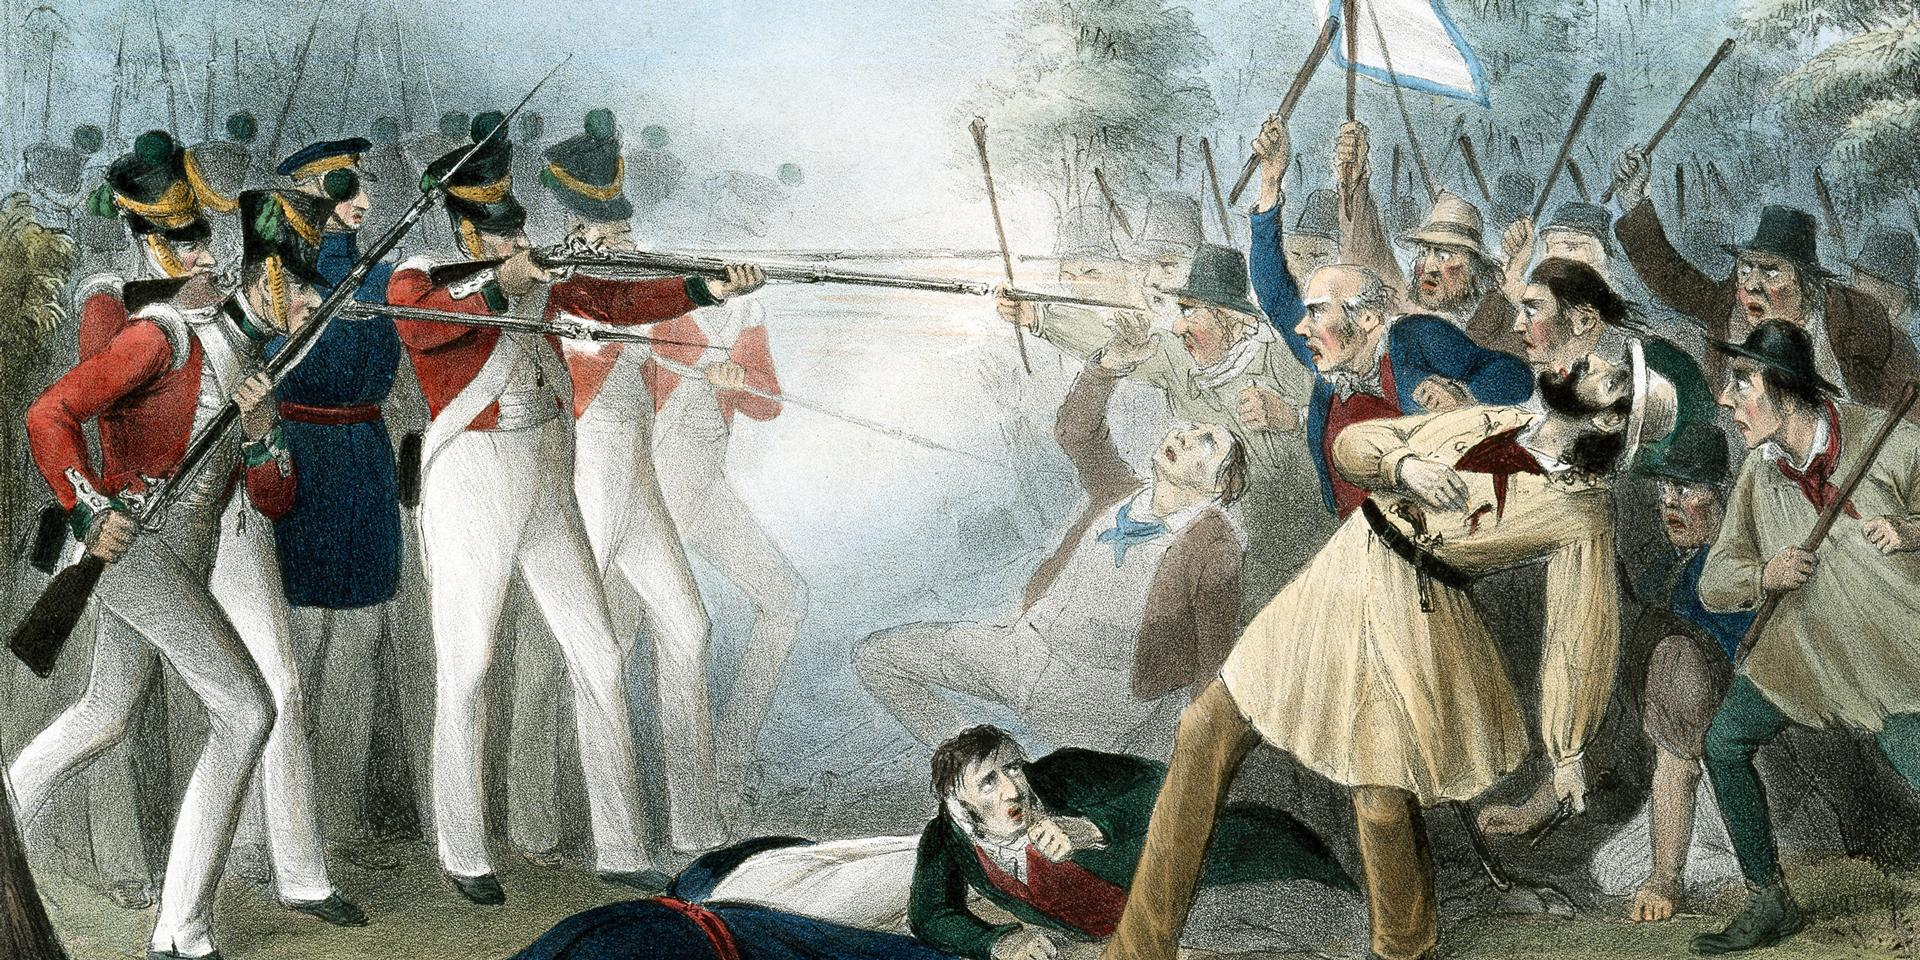 The 'Battle of Bossenden Wood' in Kent, 1838